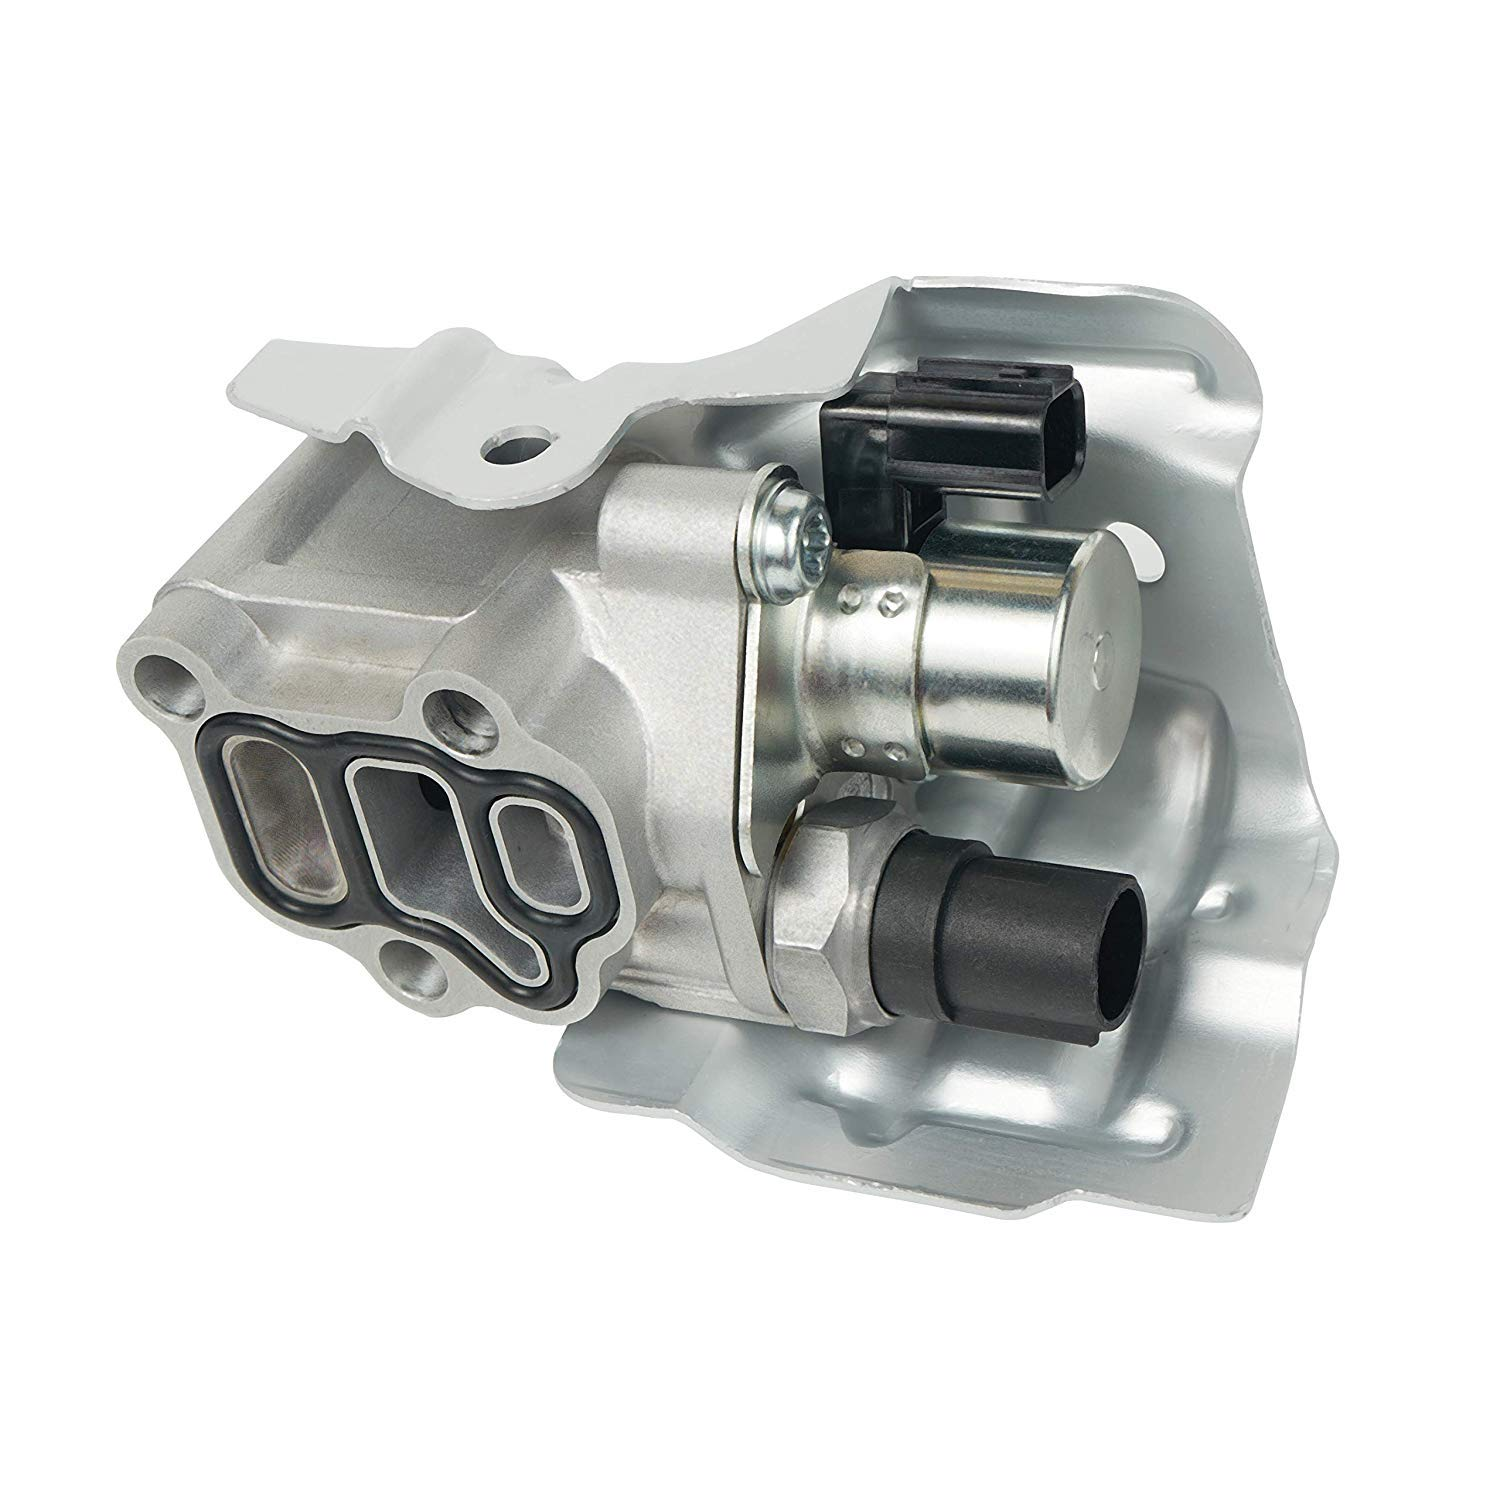 Dade 15810-RAA-A03 Spool Valve VTEC Solenoid Fit for Honda CRV CR-V Civic Si Element Accord Acura RSX Replace # 15810-PNE-G01 15810-PPA-A01 15810-RAA-A01